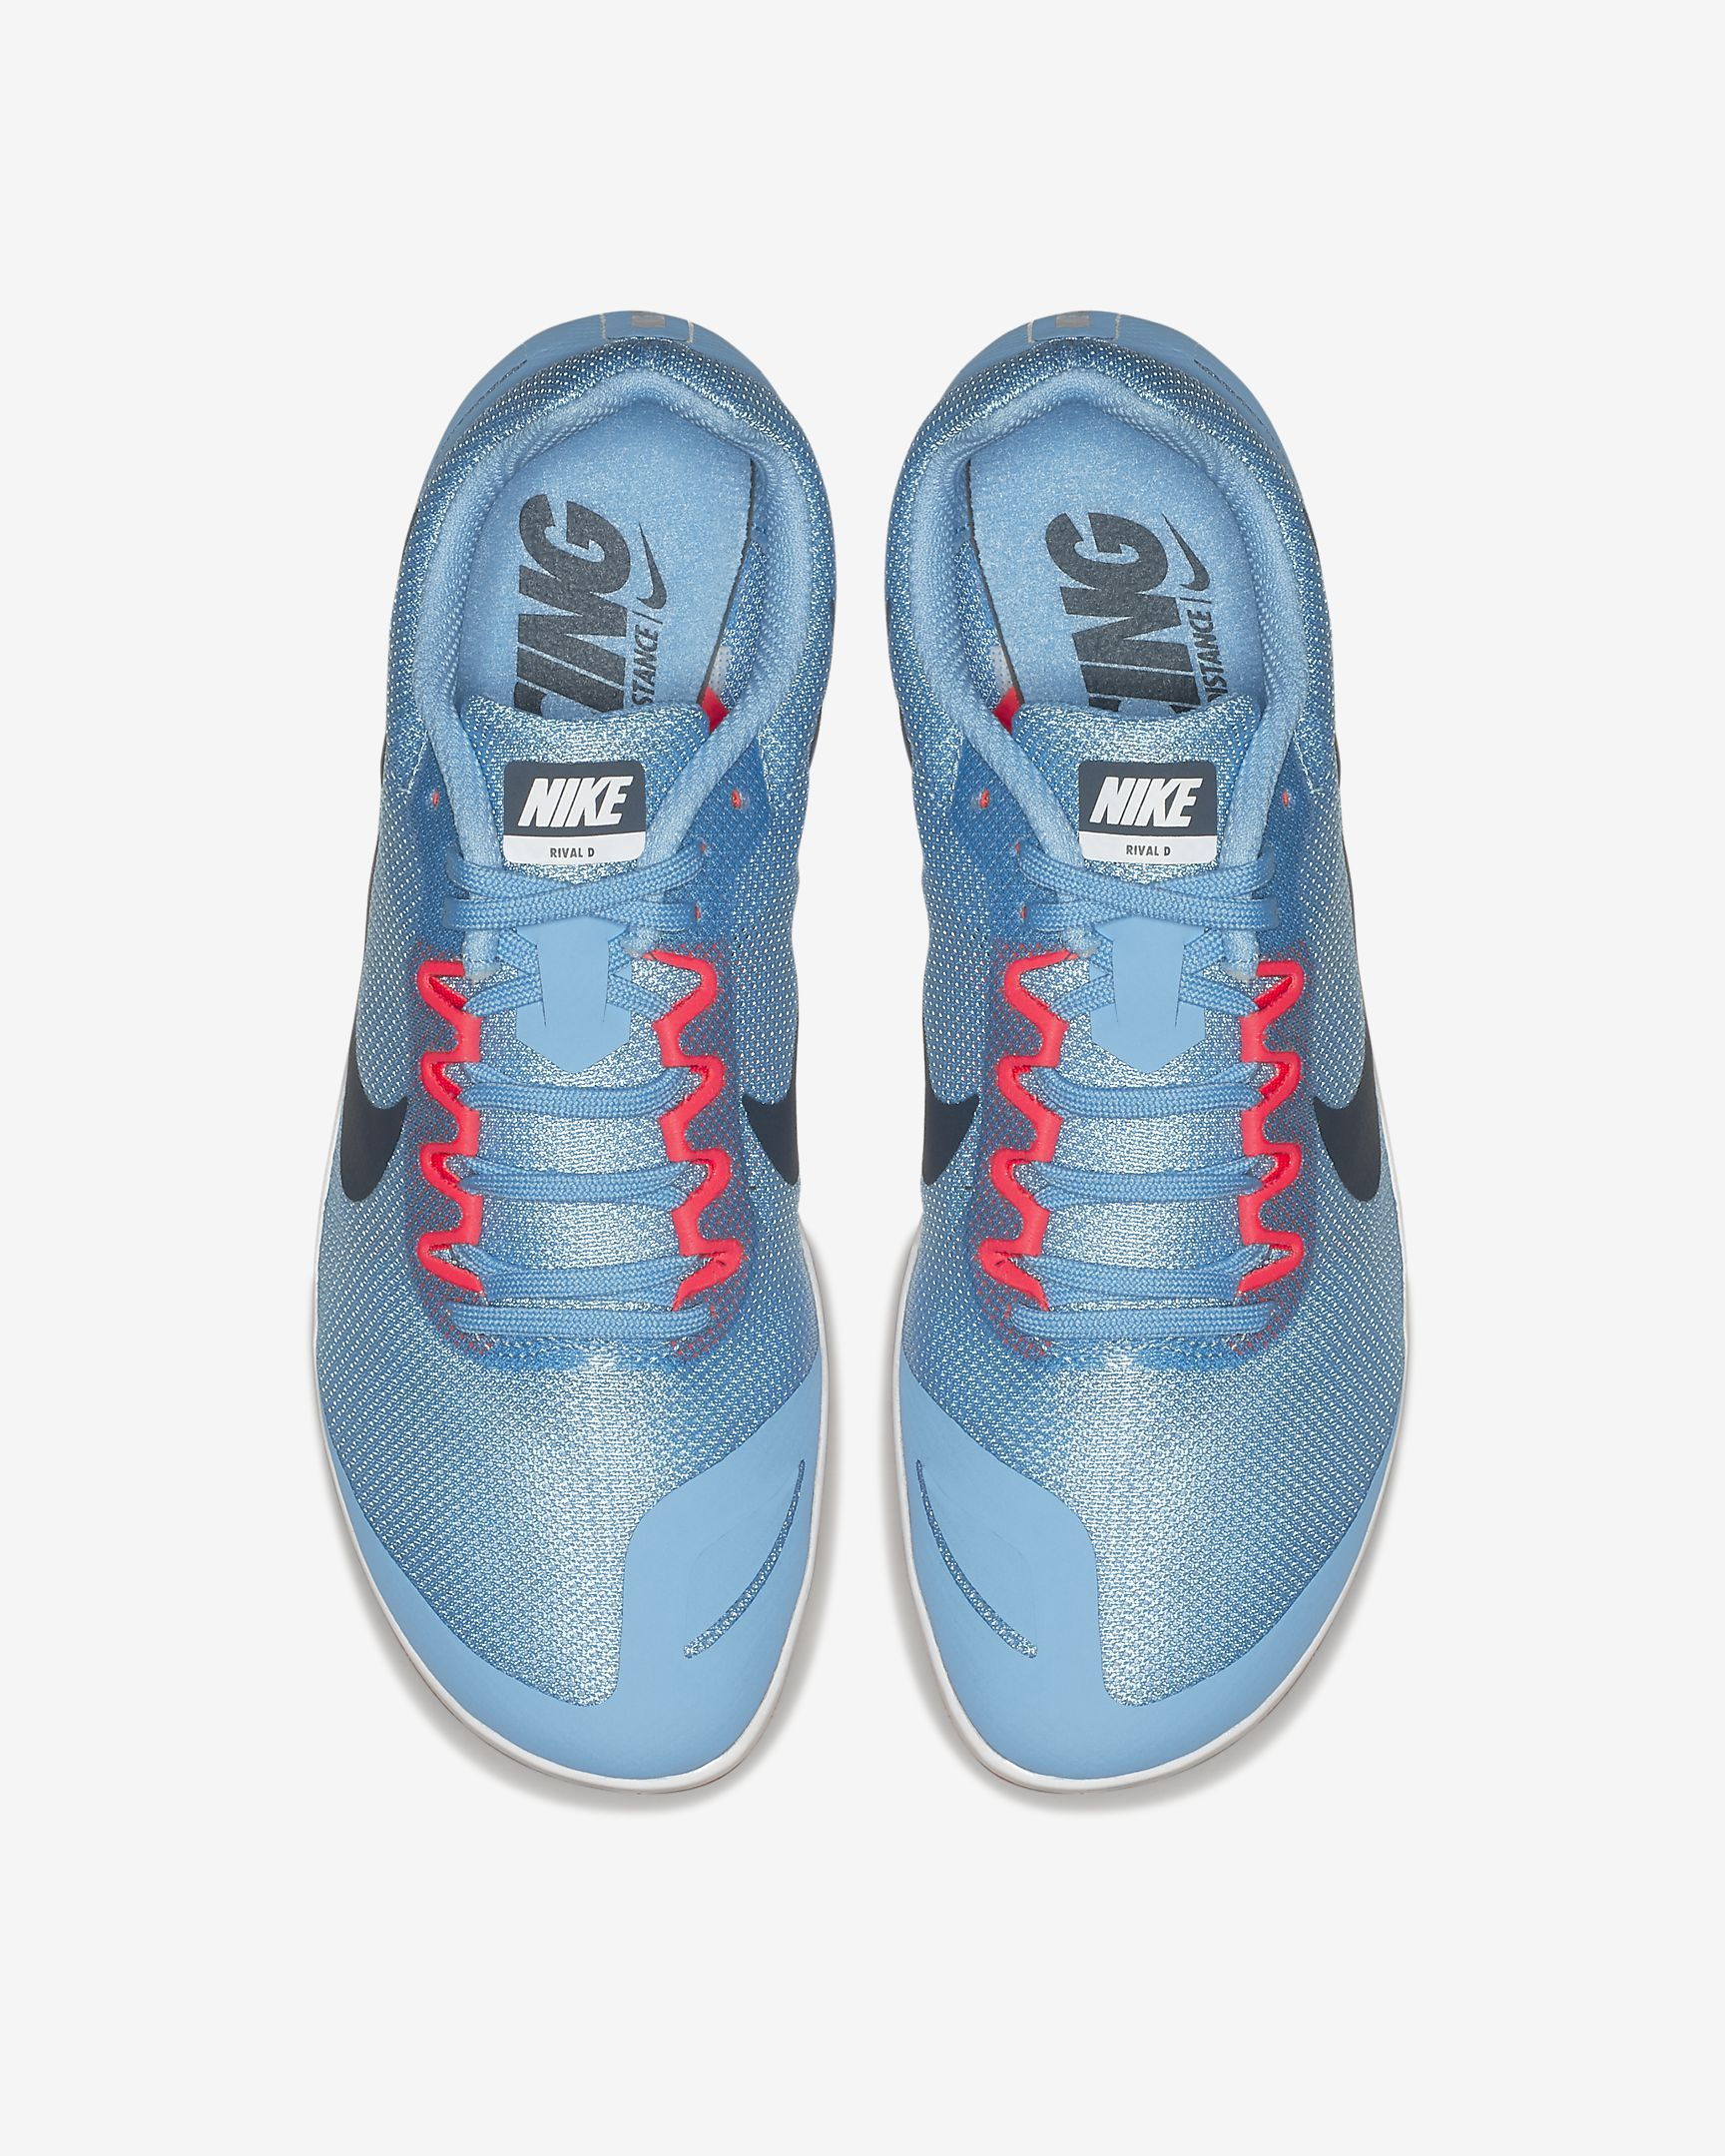 c58ce0a928a9a Nike Zoom Rival D 10 Women s Track Spike